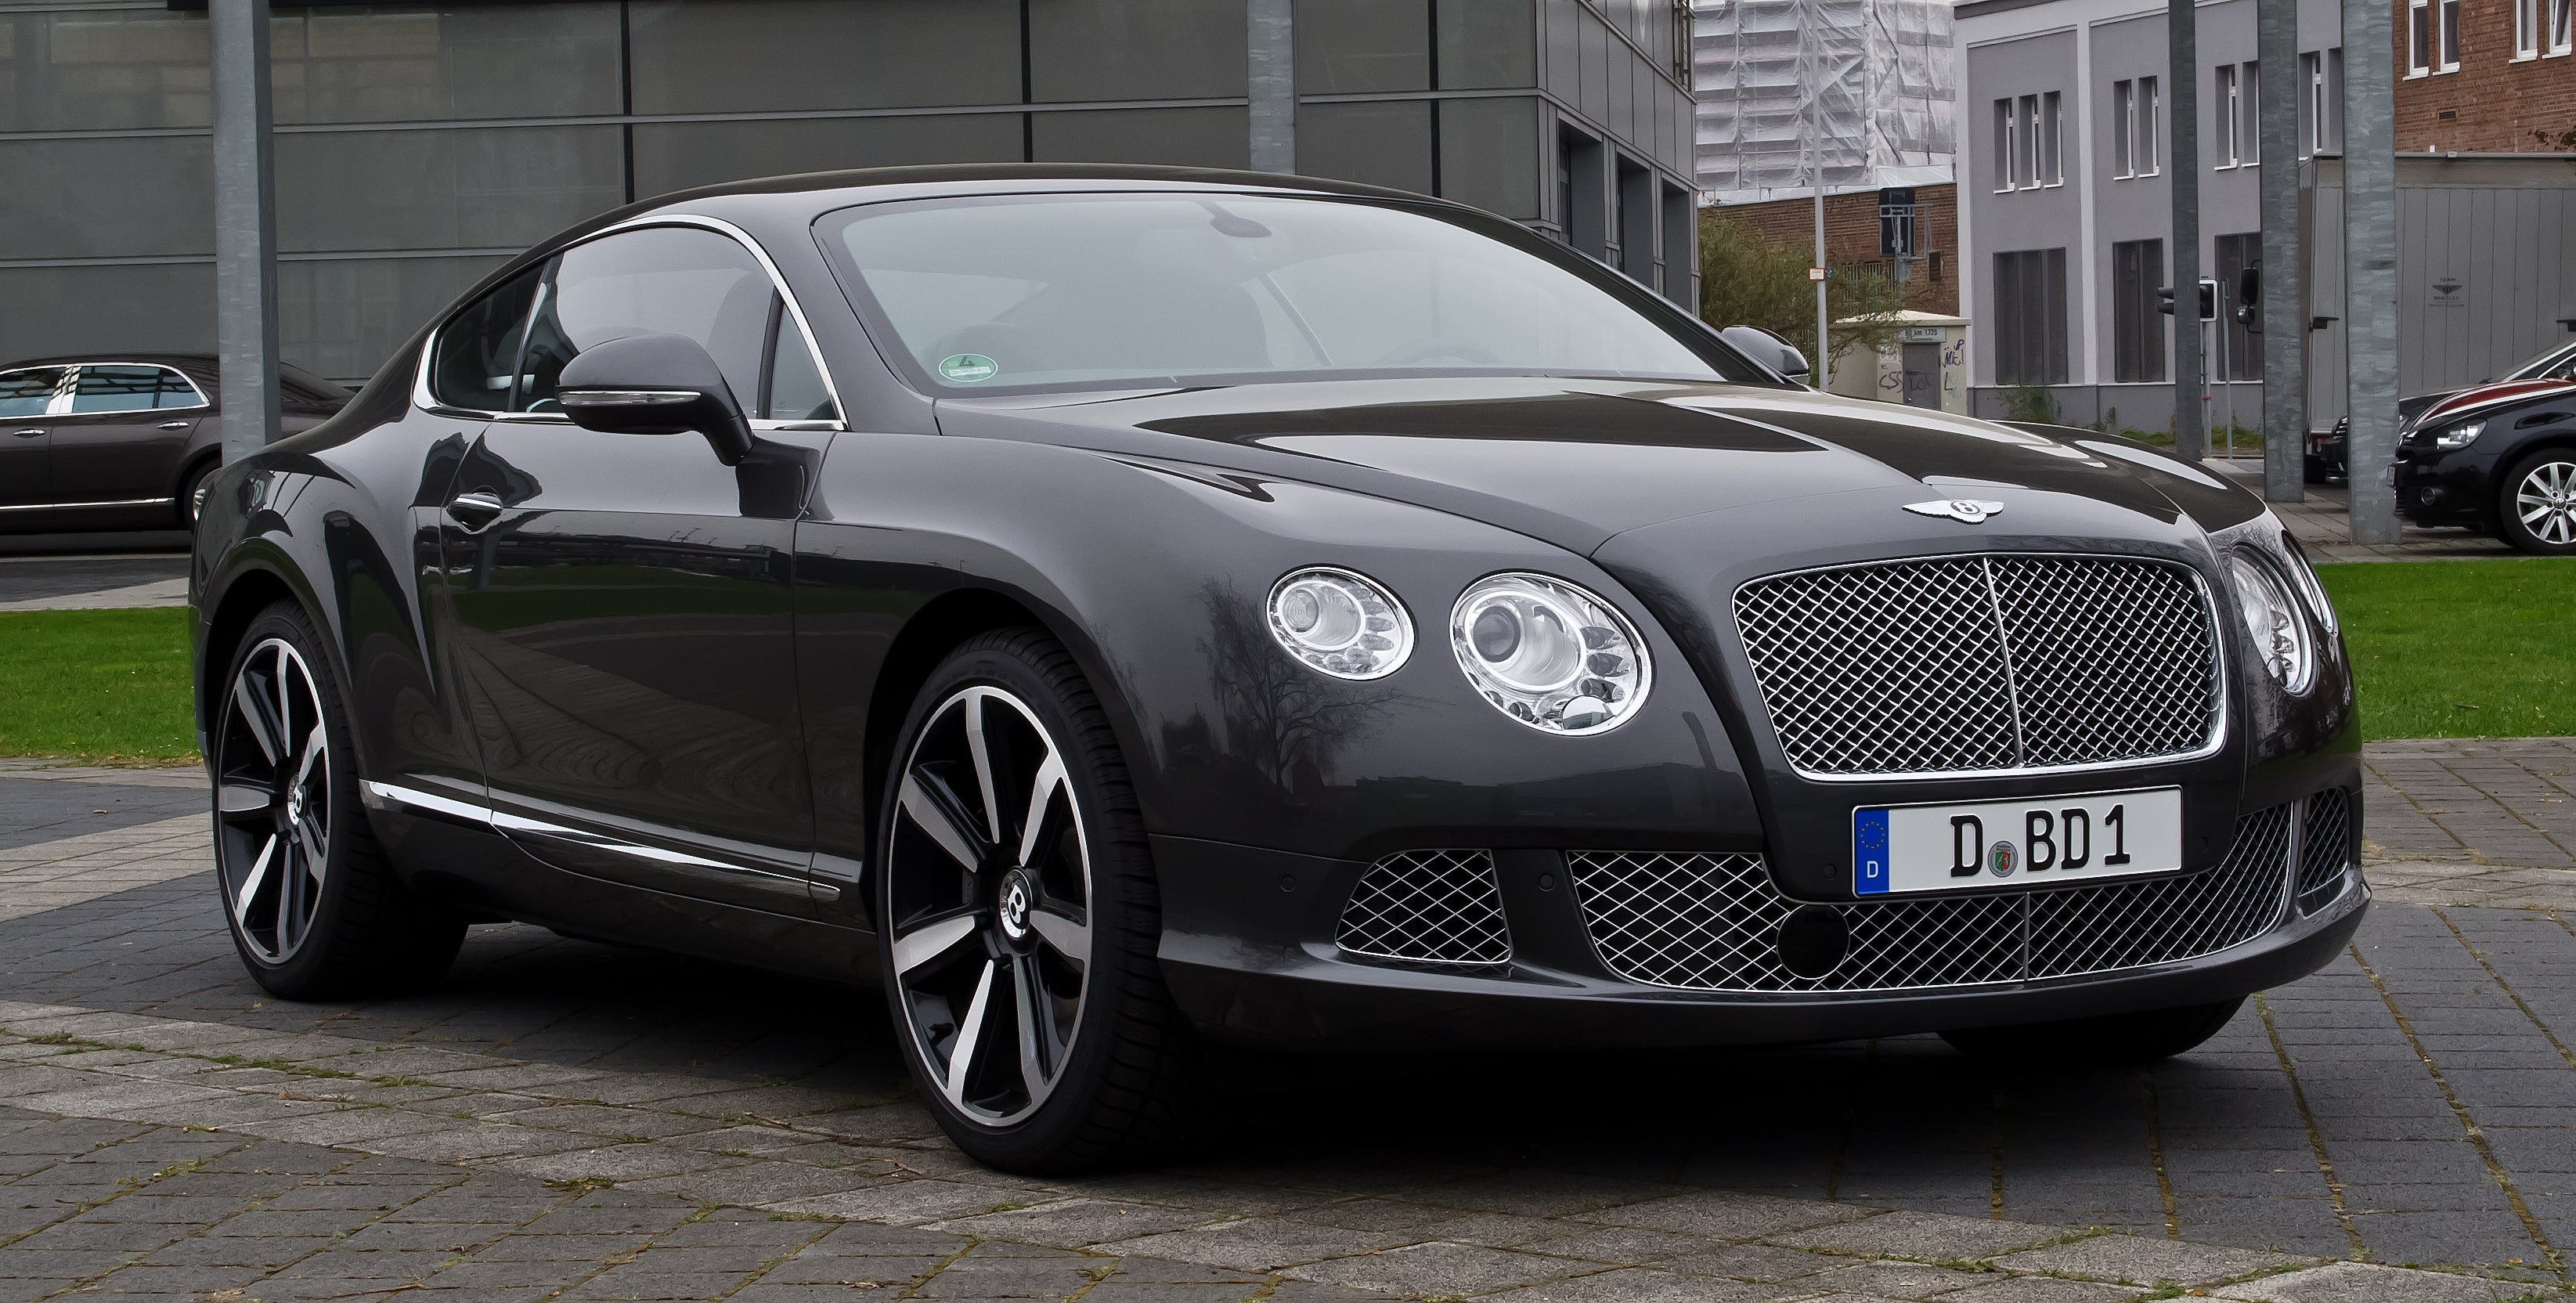 Continental GT car - Color: Black  // Description: amazing classy fast